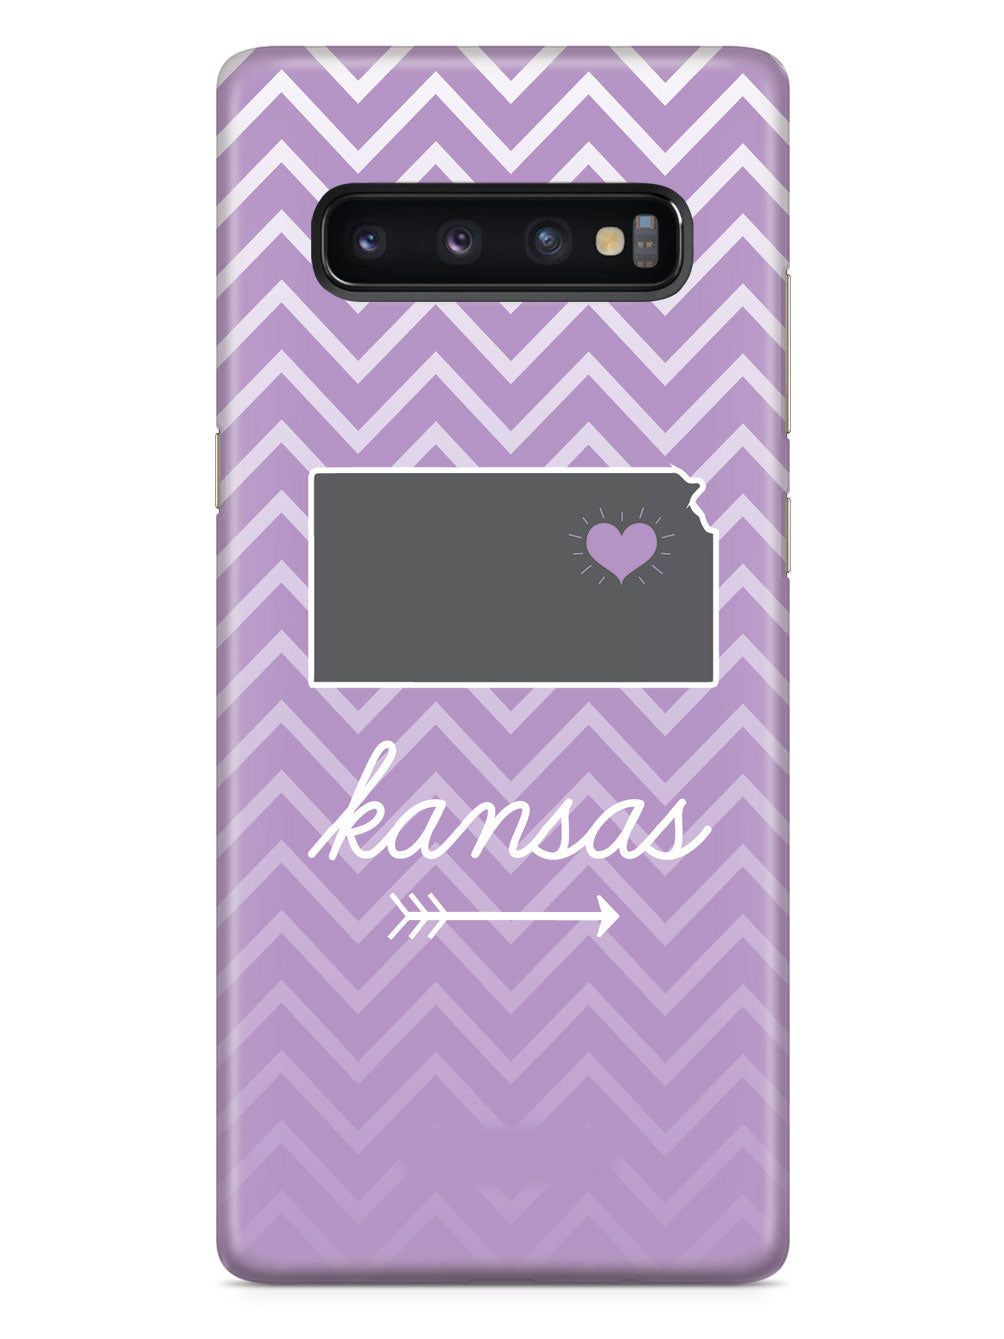 Kansas Chevron Pattern State Case